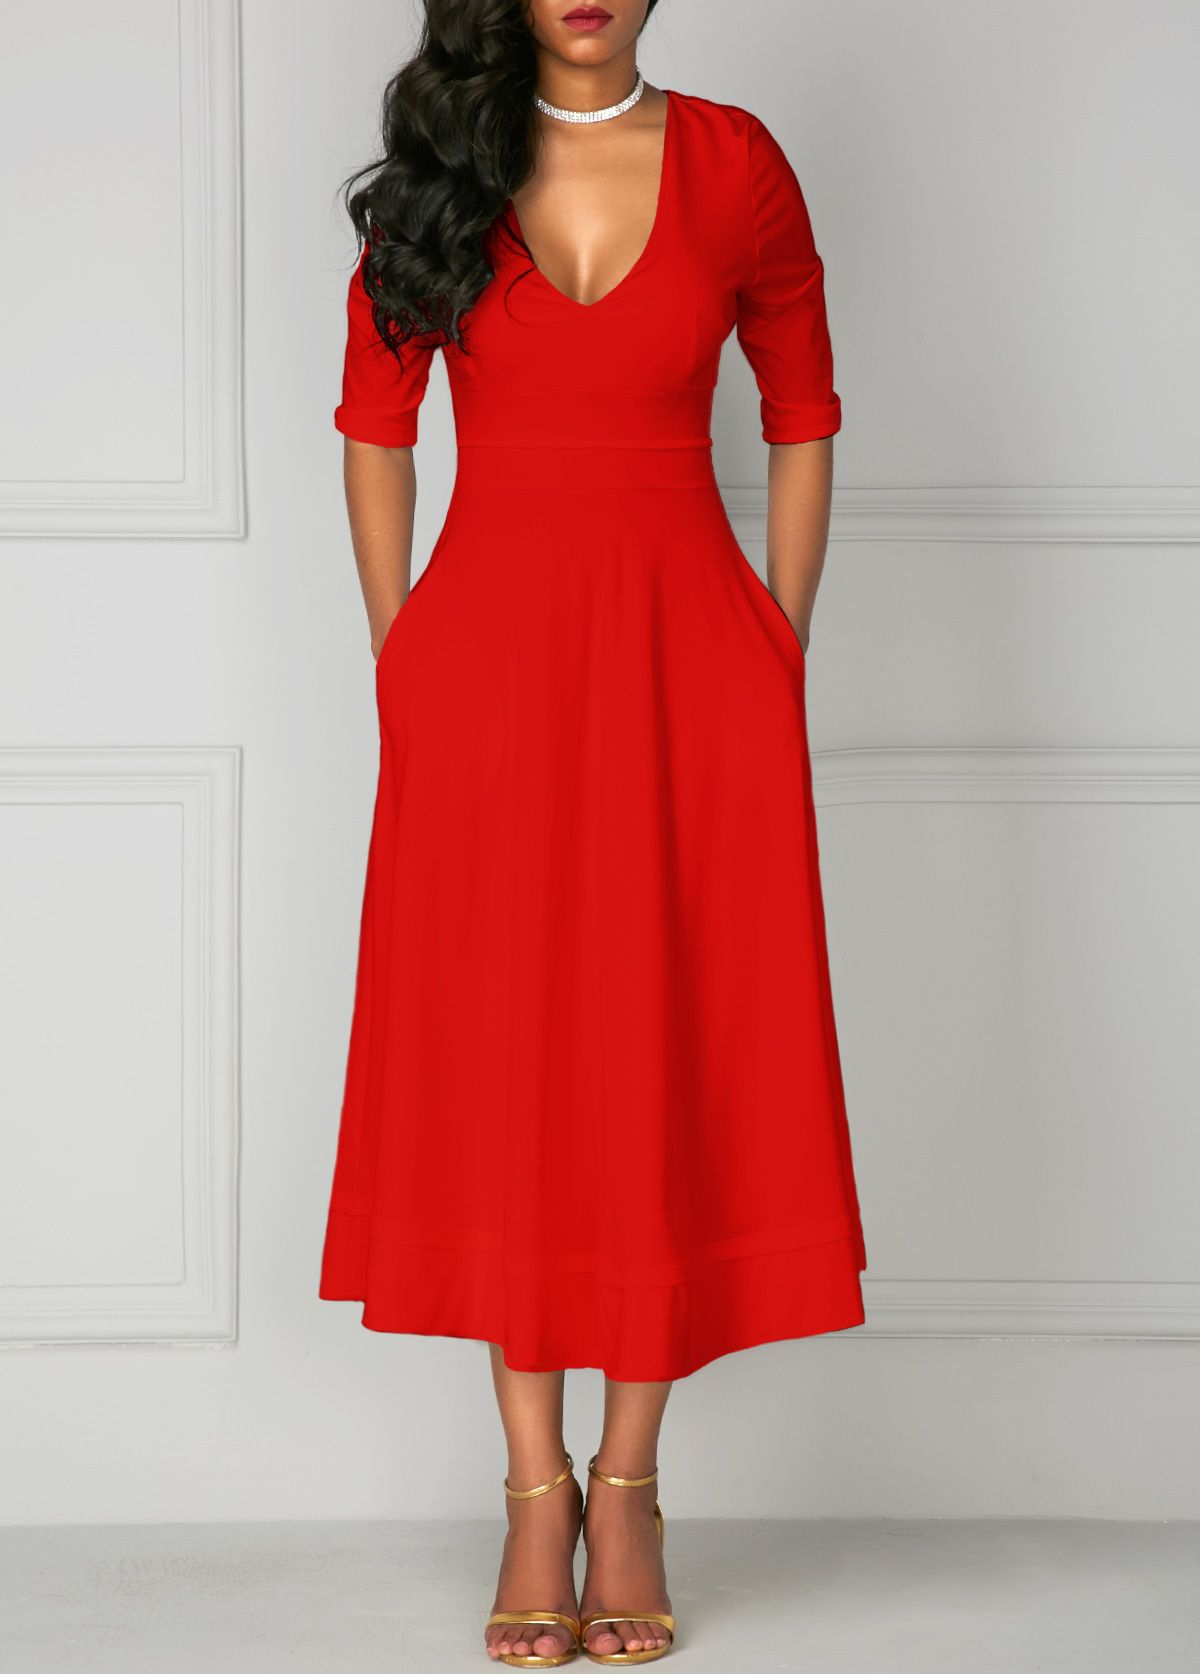 86bded27c3c65 Red V Neck High Waist Half Sleeve Dress on sale only US$34.42 now, buy  cheap Red V Neck High Waist Half Sleeve Dress at liligal.com